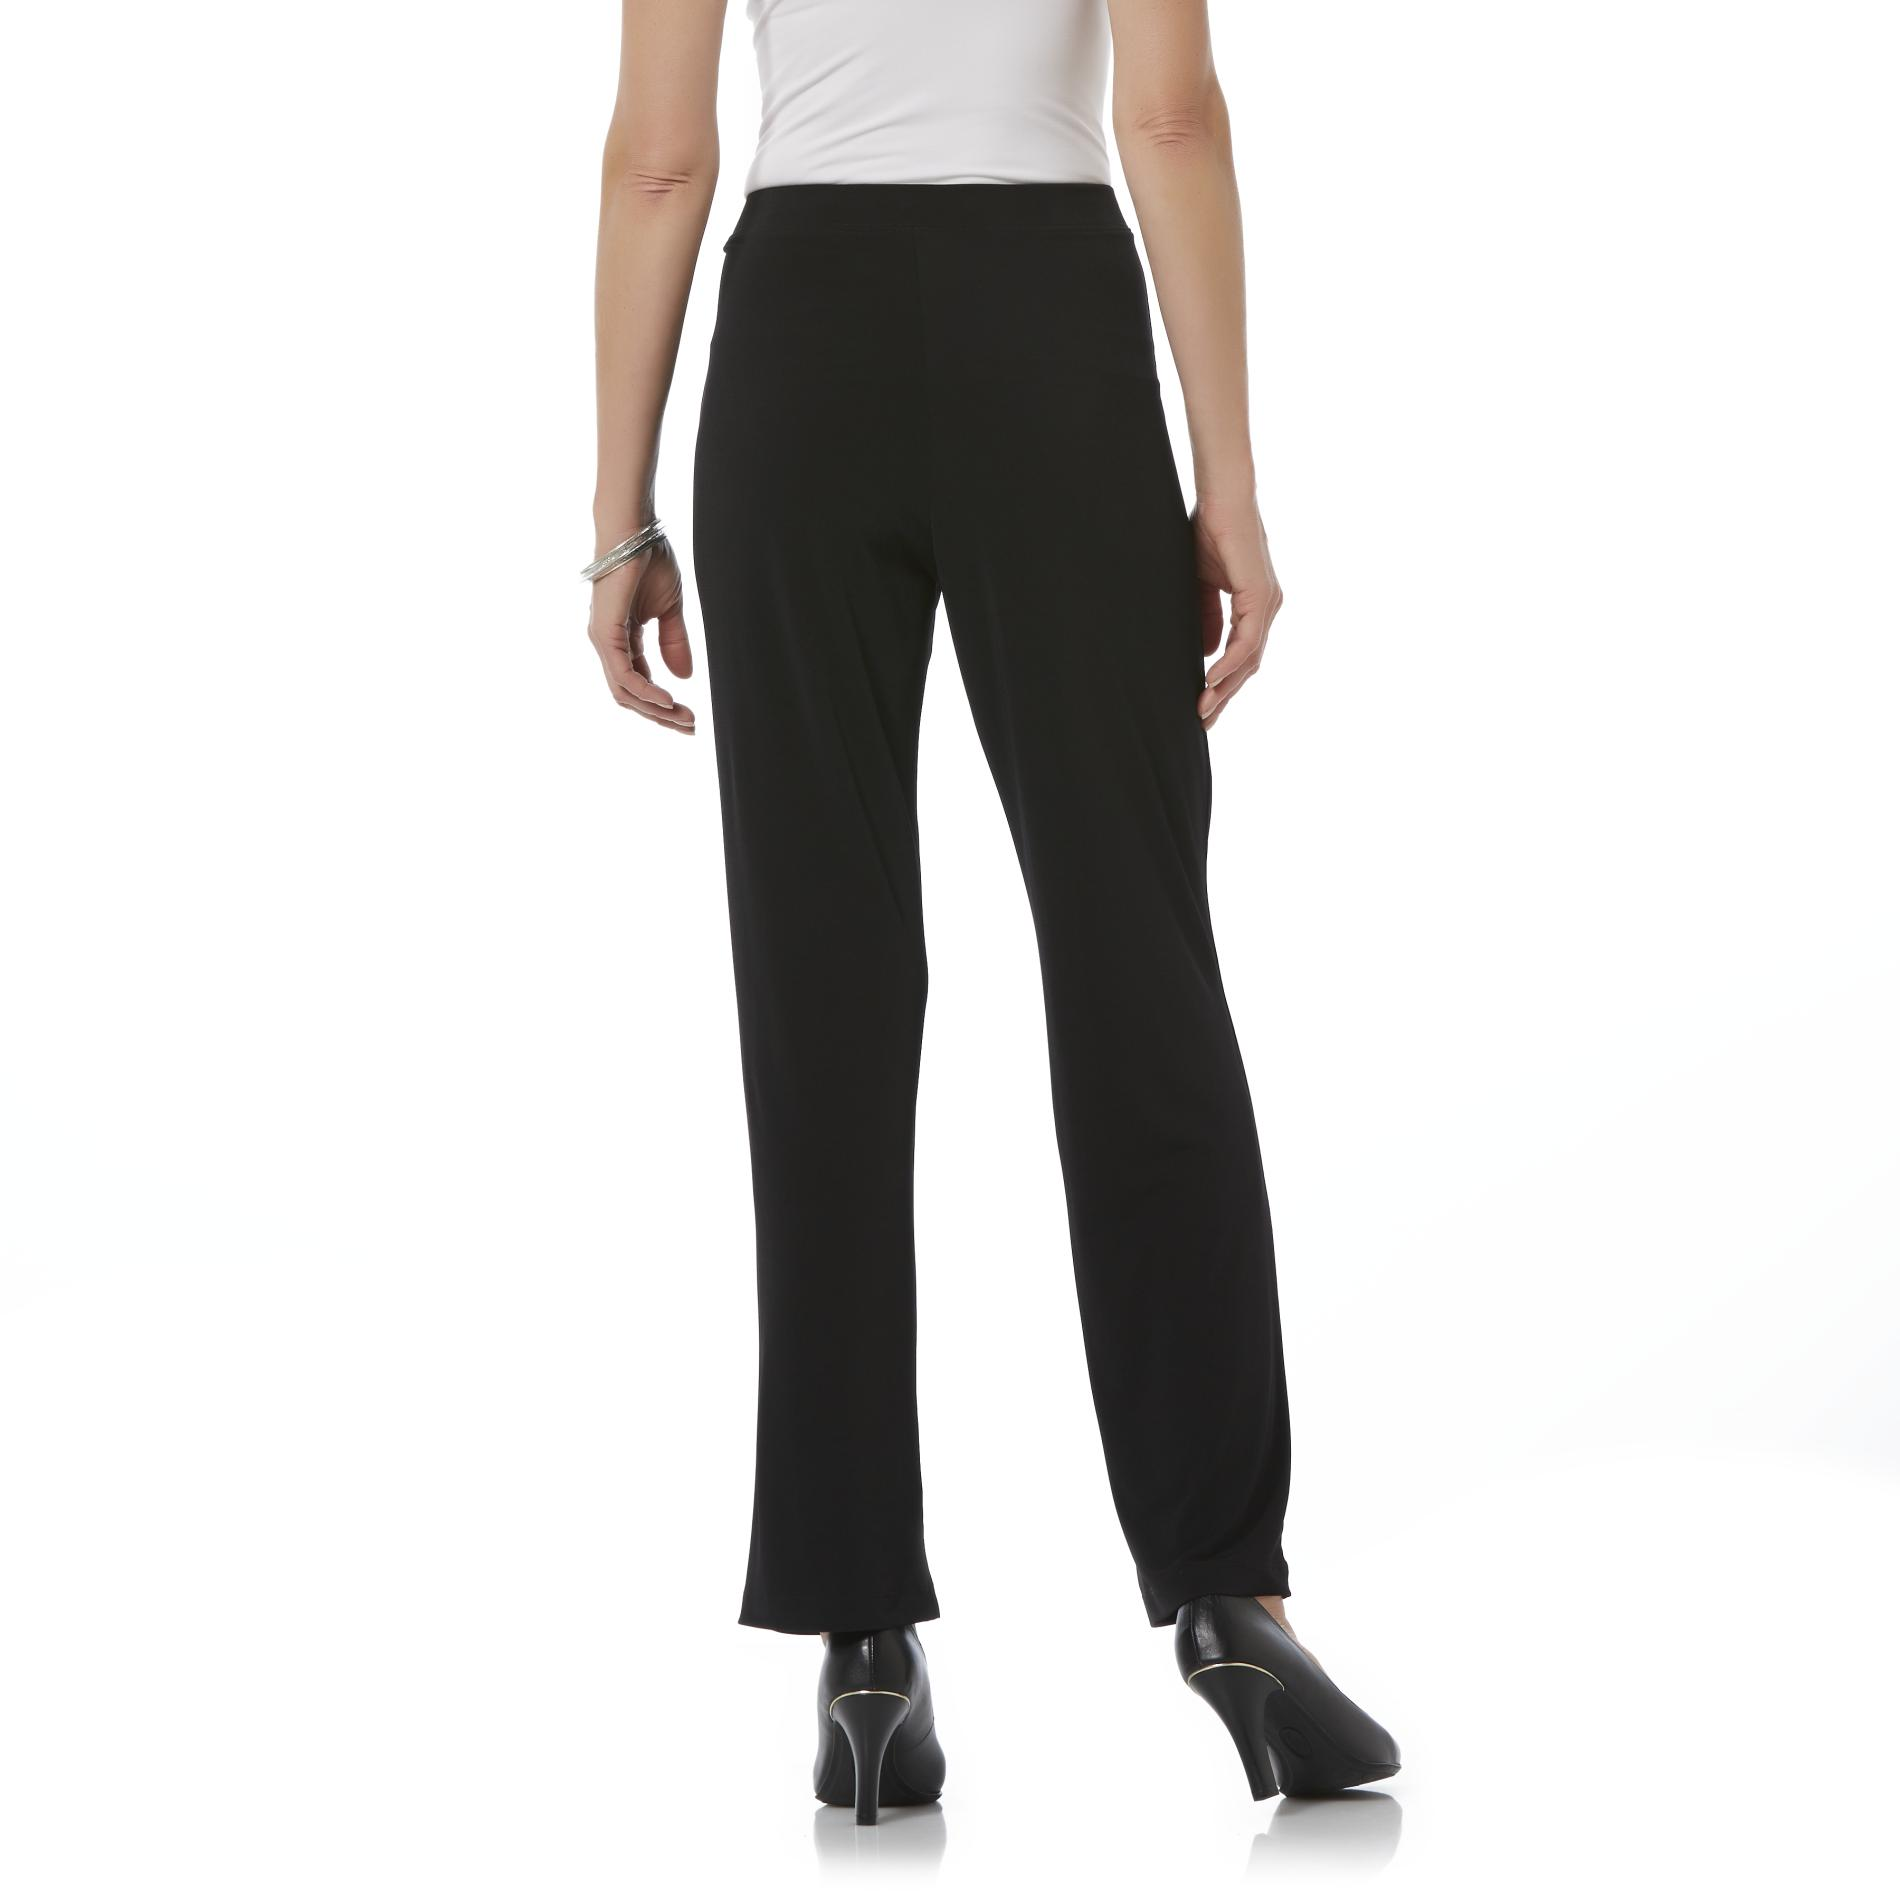 Jaclyn Smith Women's Knit Pants